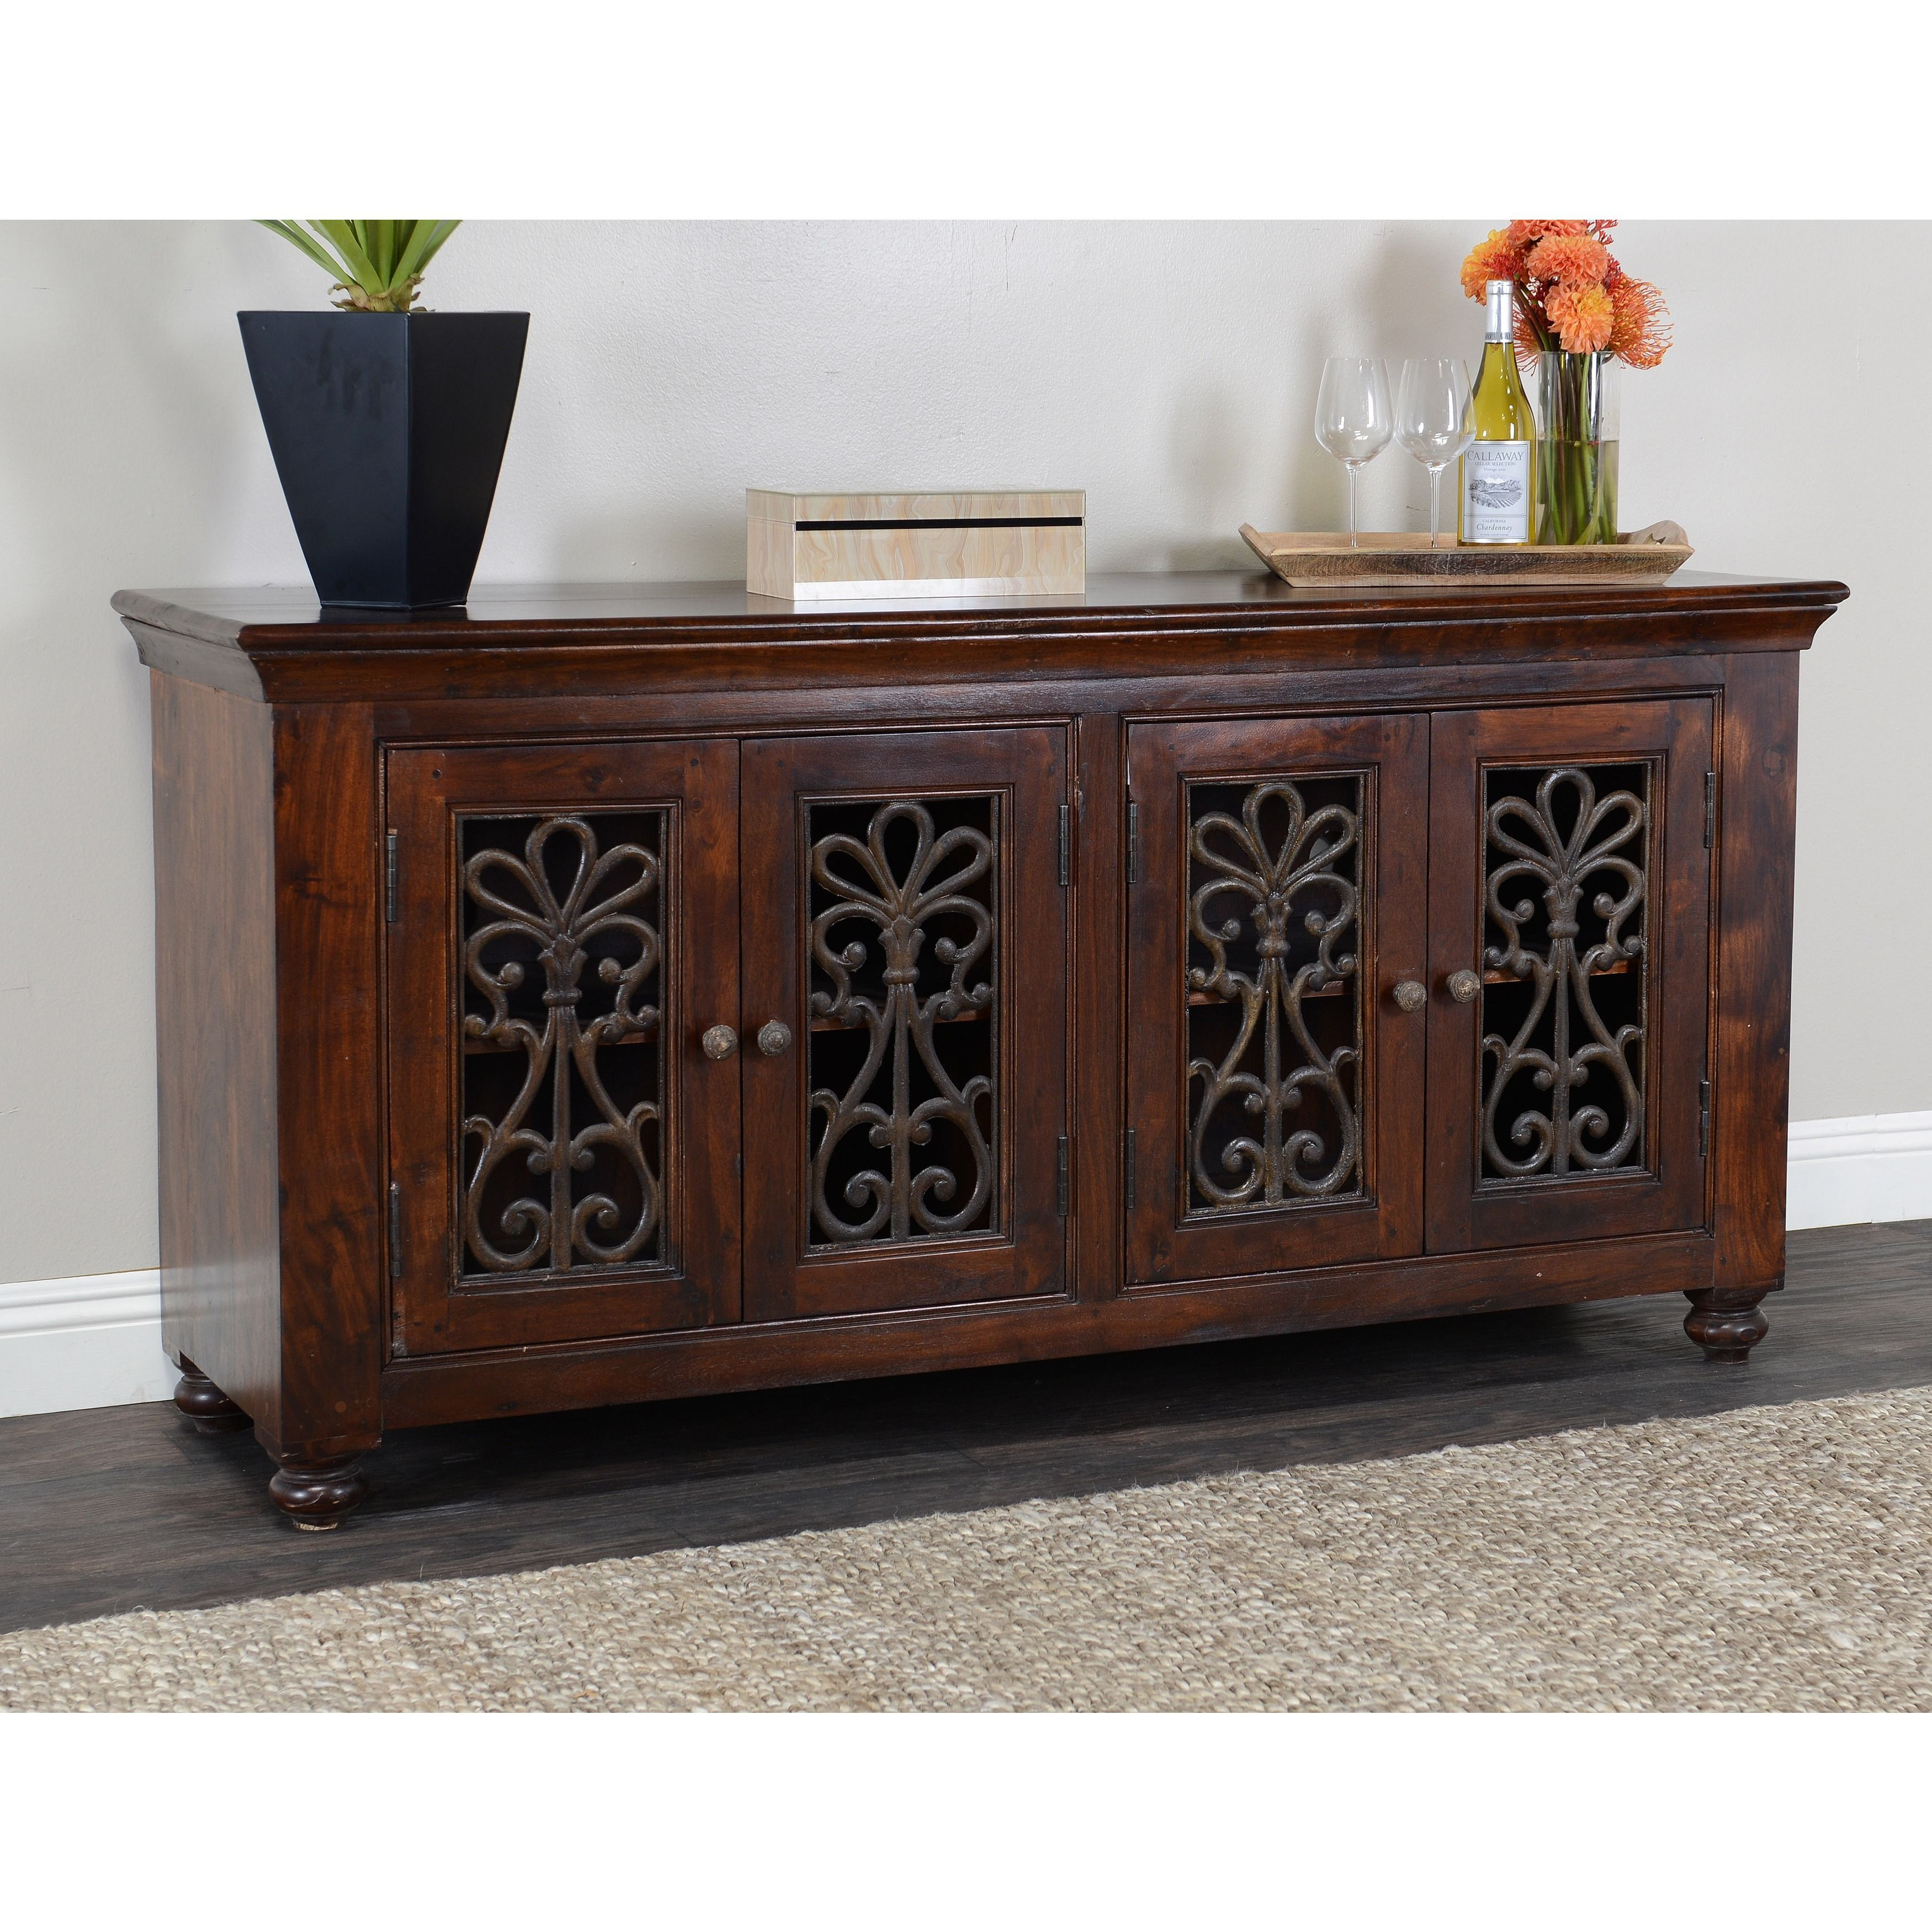 Beautifully crafted from acacia wood and featuring distressed iron highlights this elegant plasma tv stand makes a handsome addition to any decor